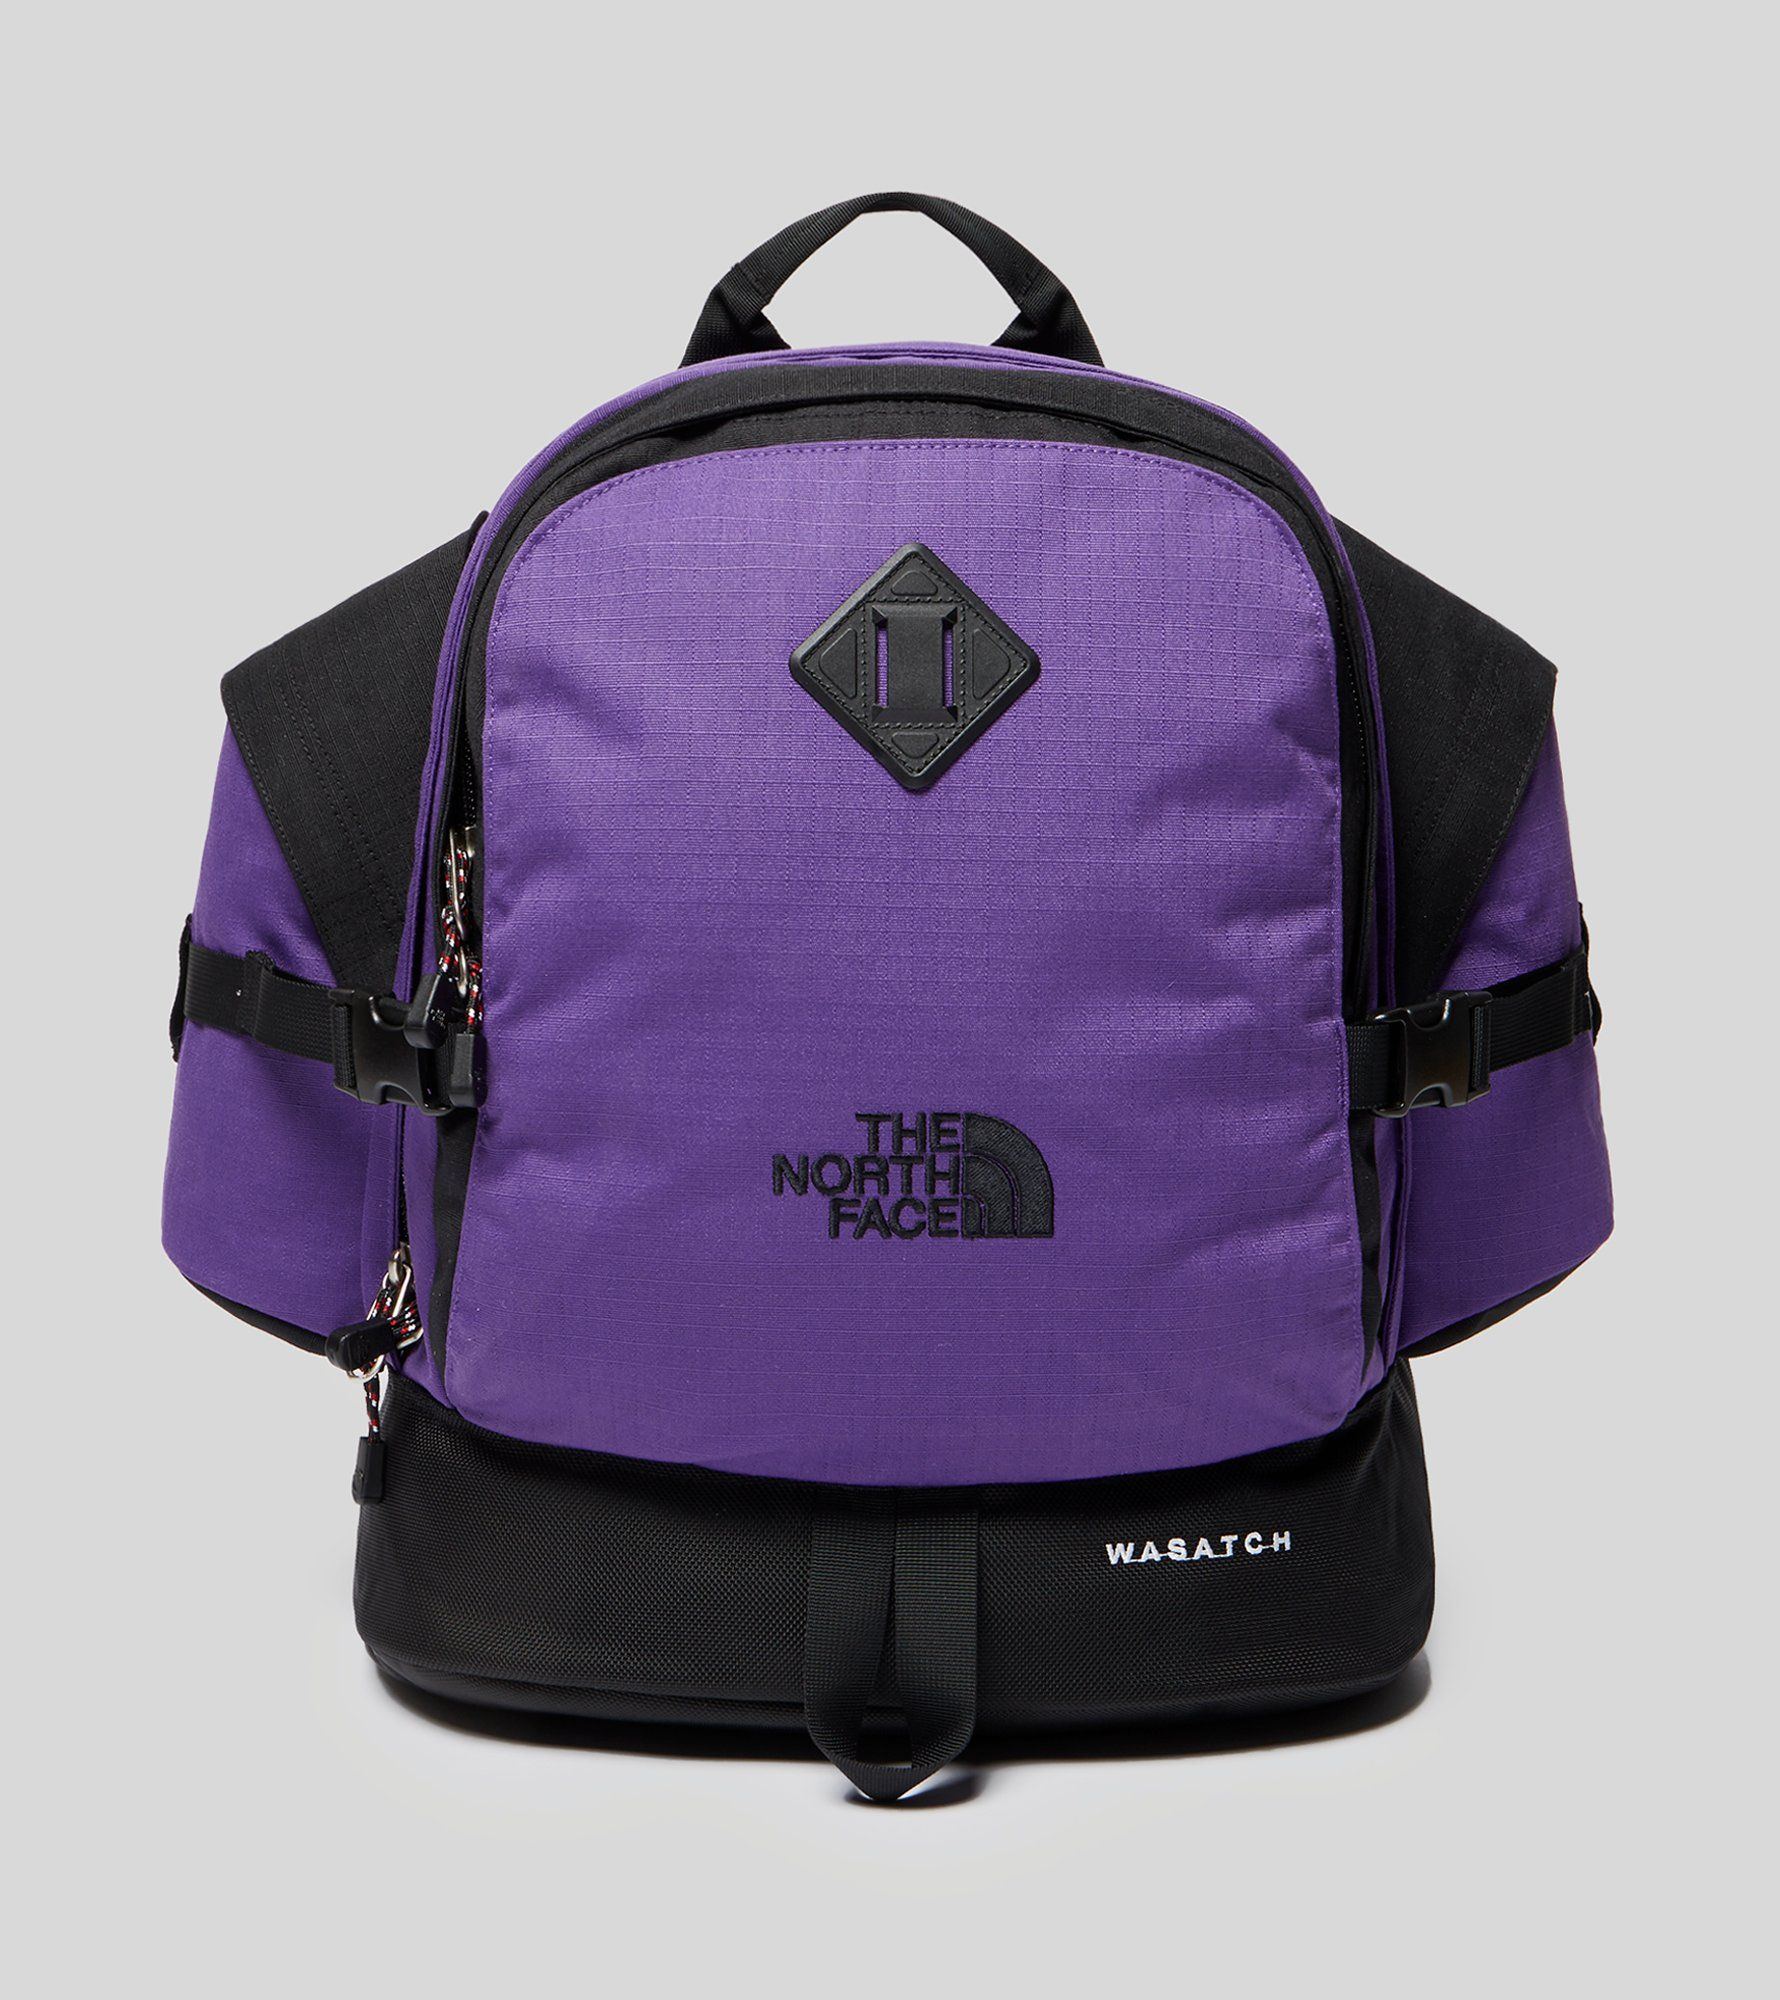 The North Face Wasatch Backpack